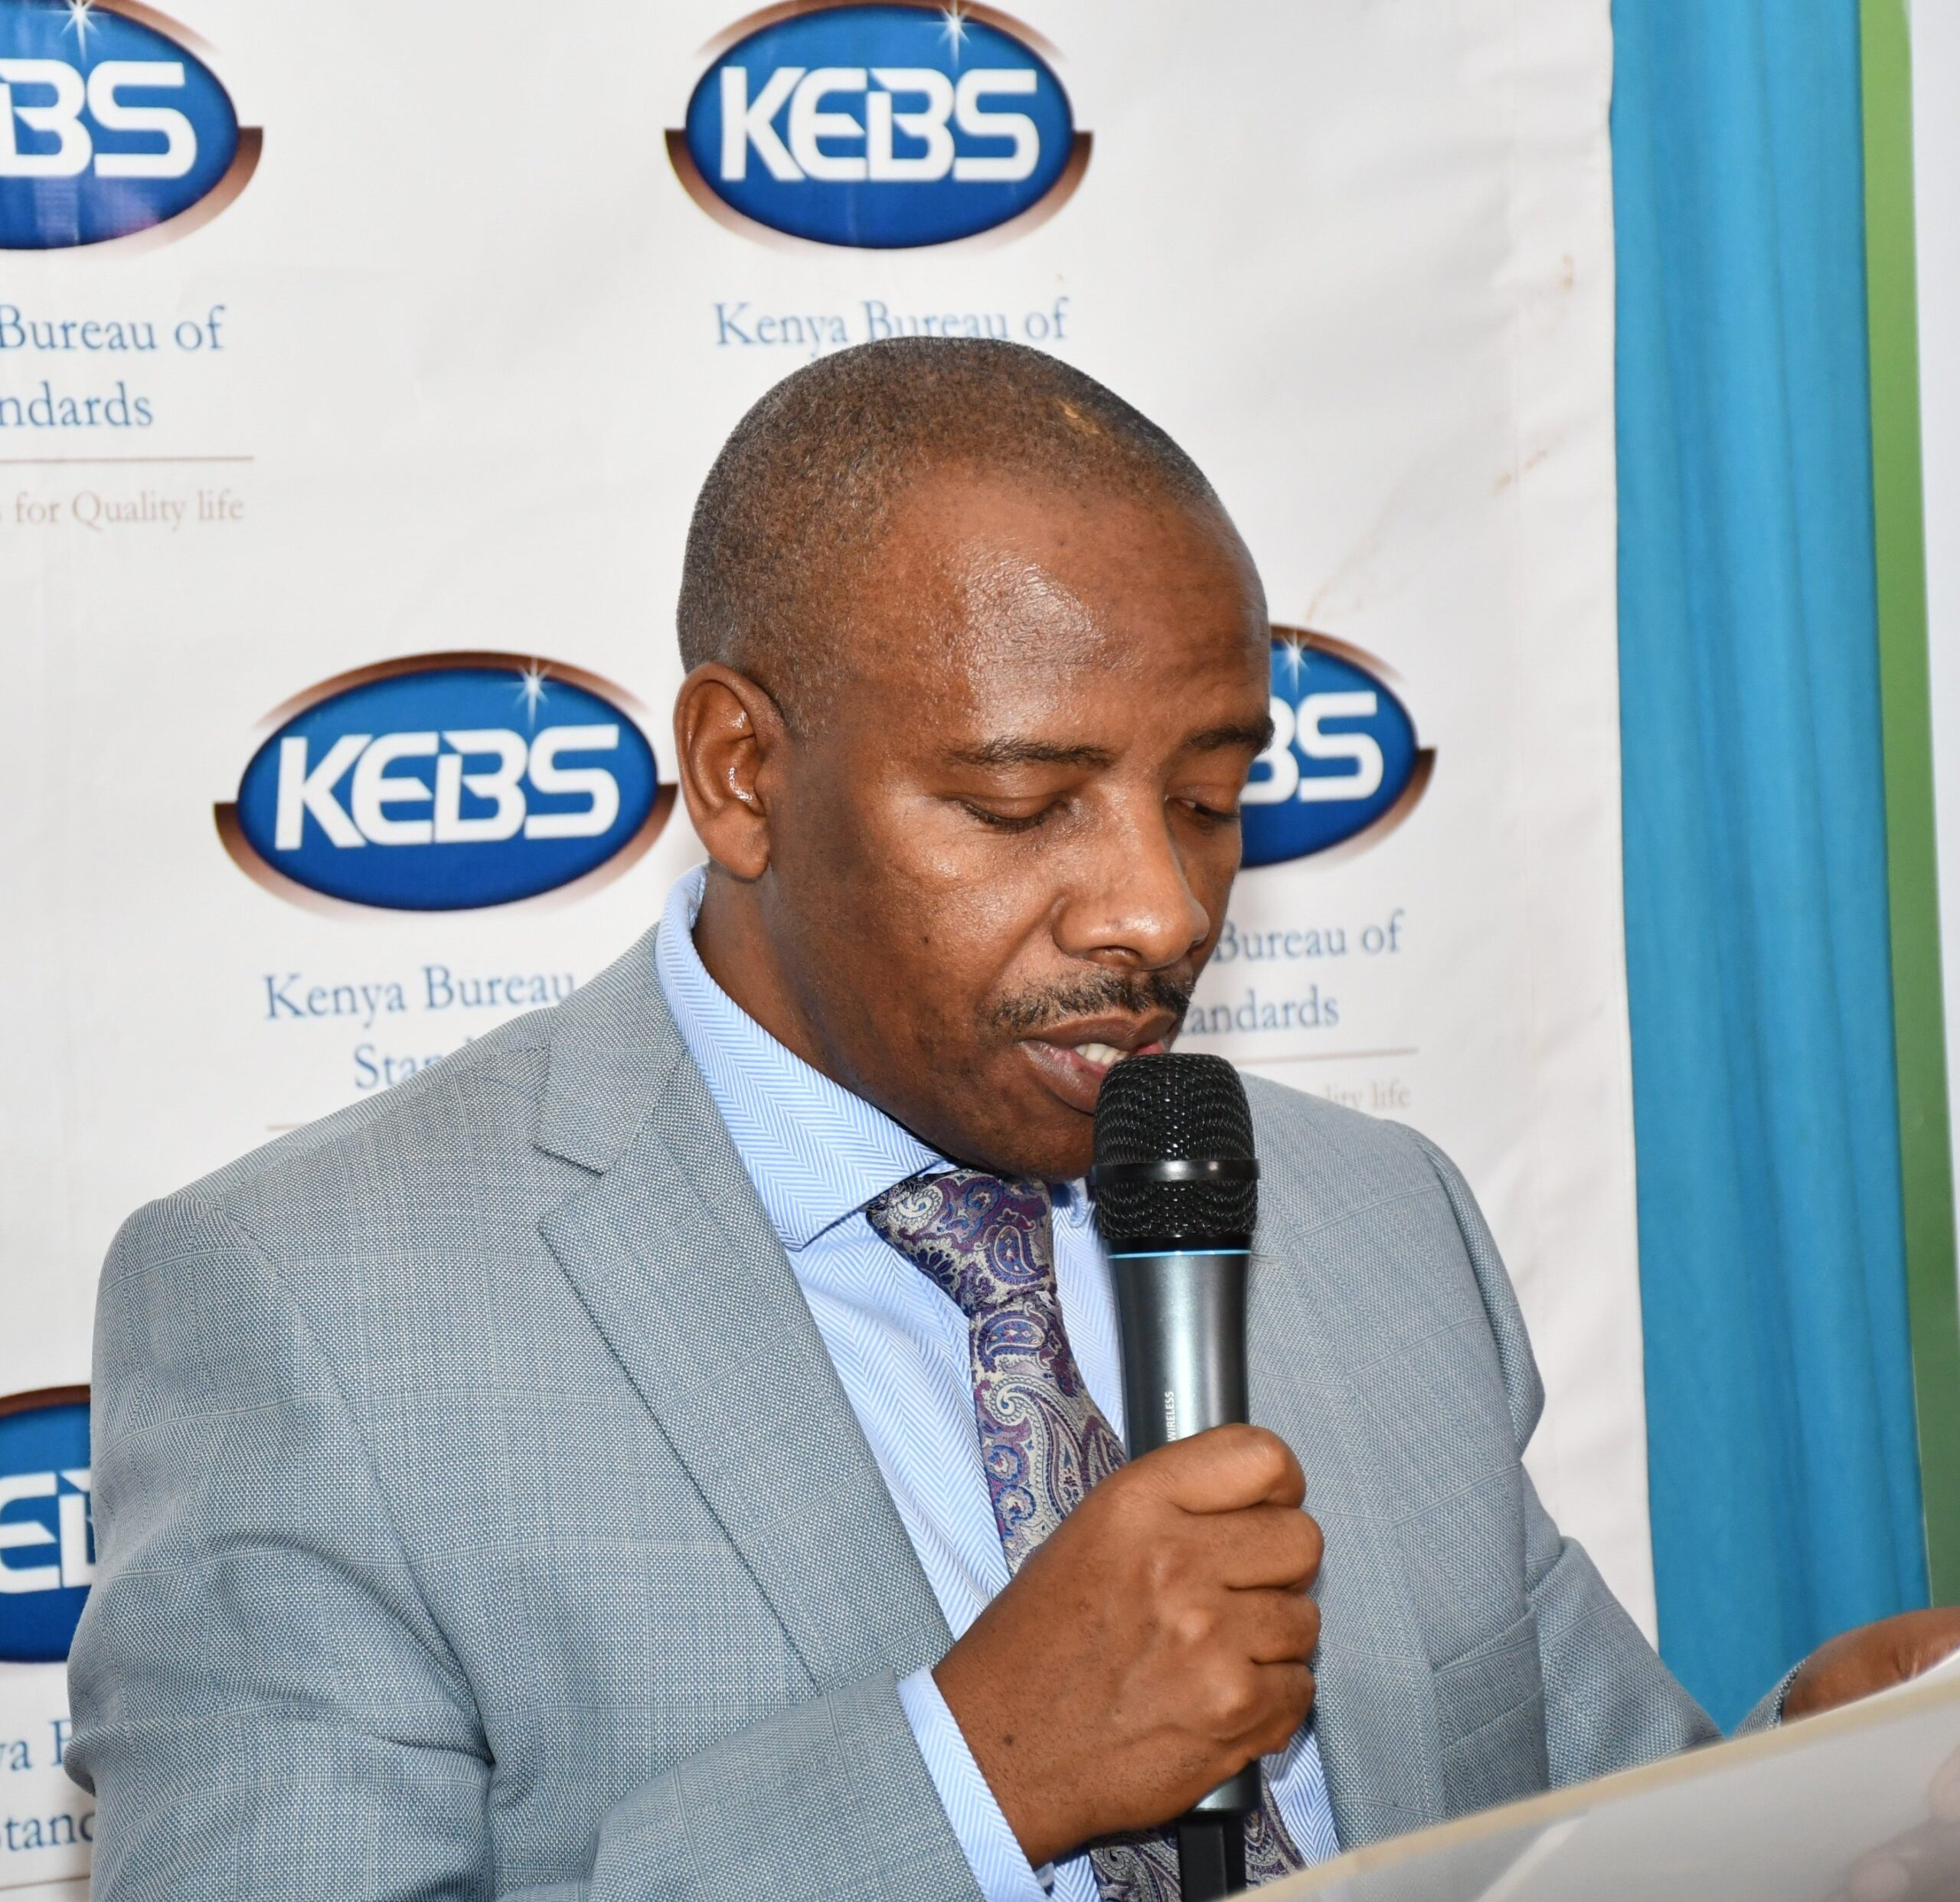 KEBS ratifies new standards on Clean Energy in the country